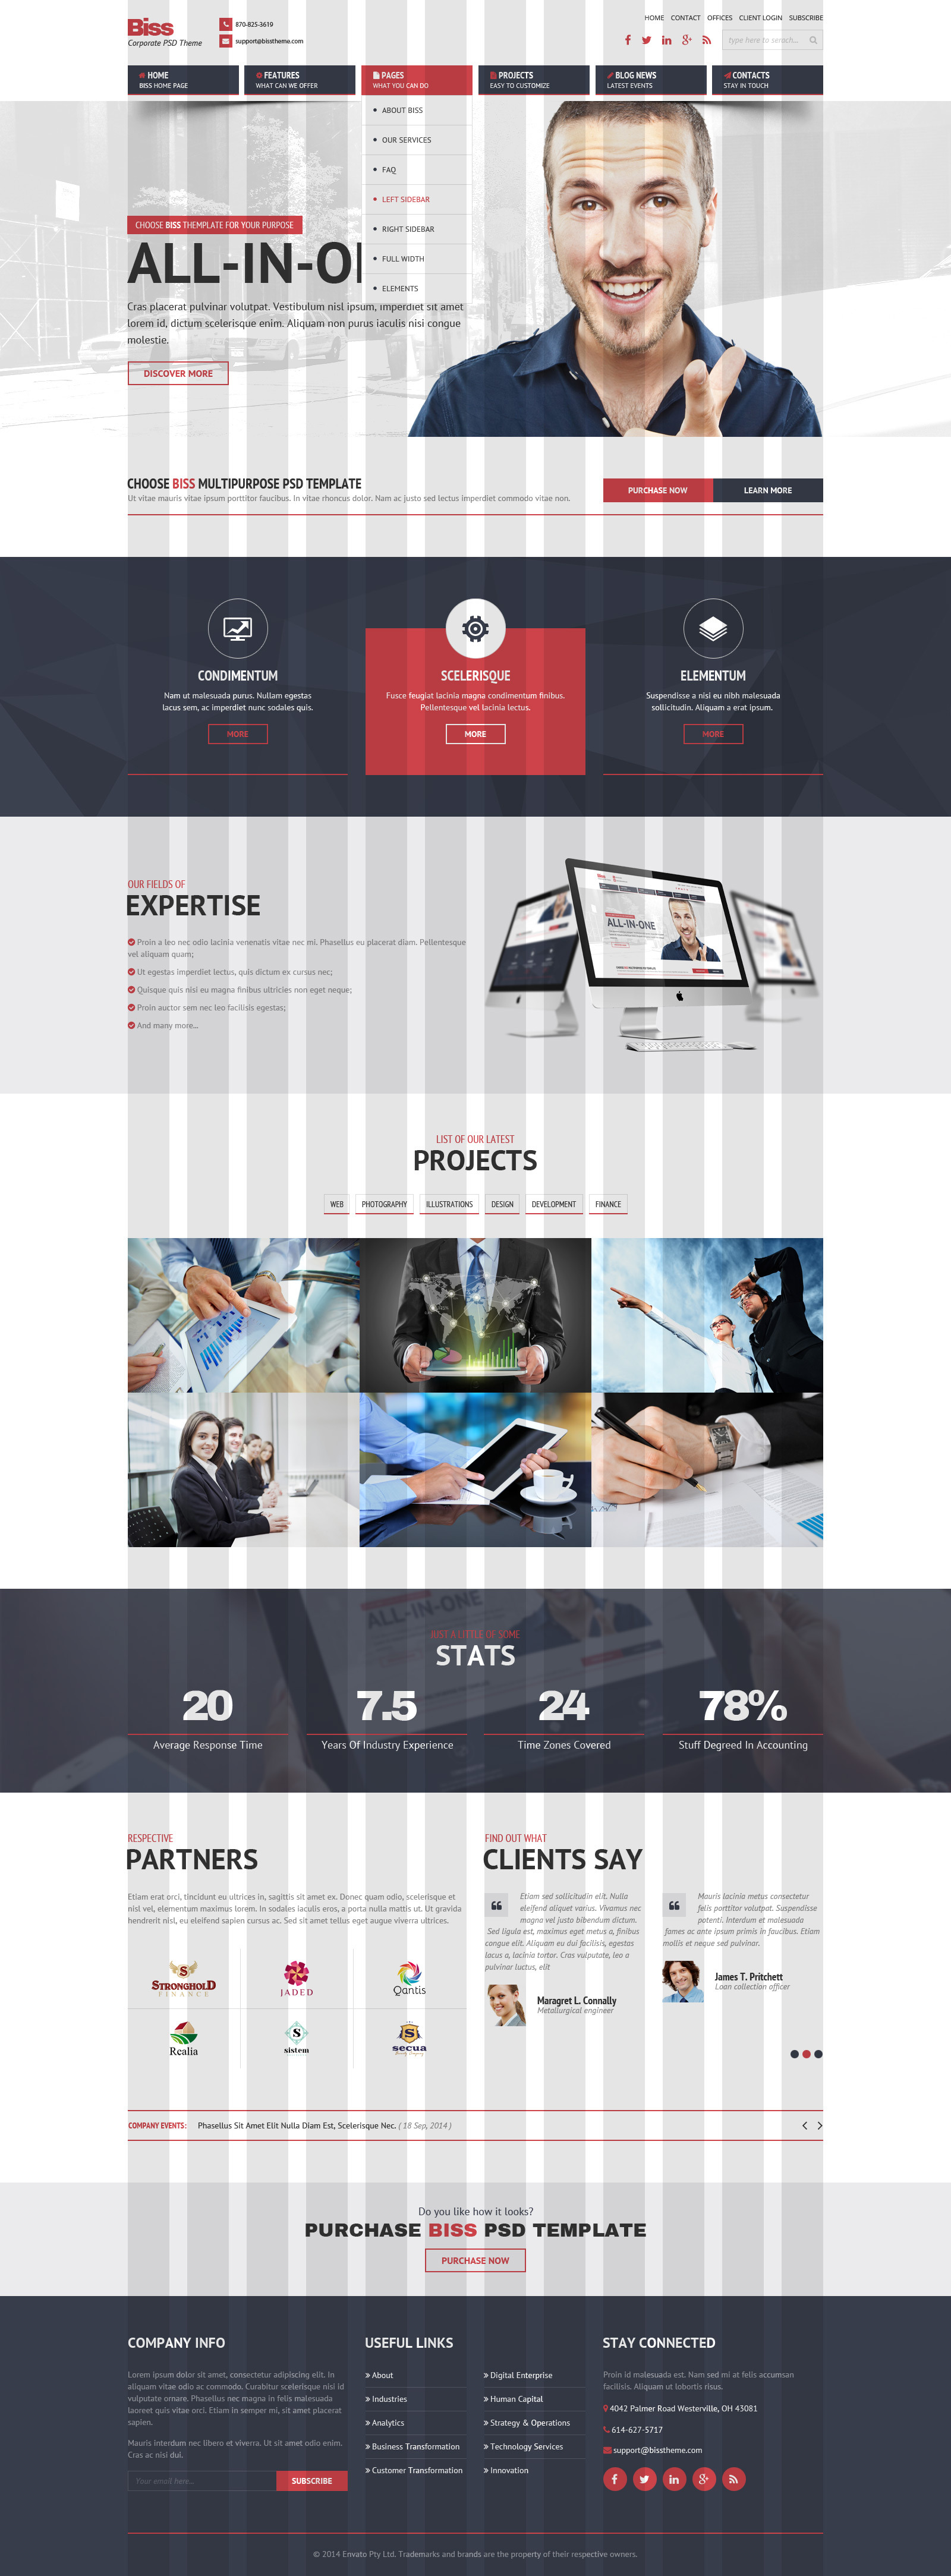 Biss Corporate HTML Themplate by RivaThemes | ThemeForest